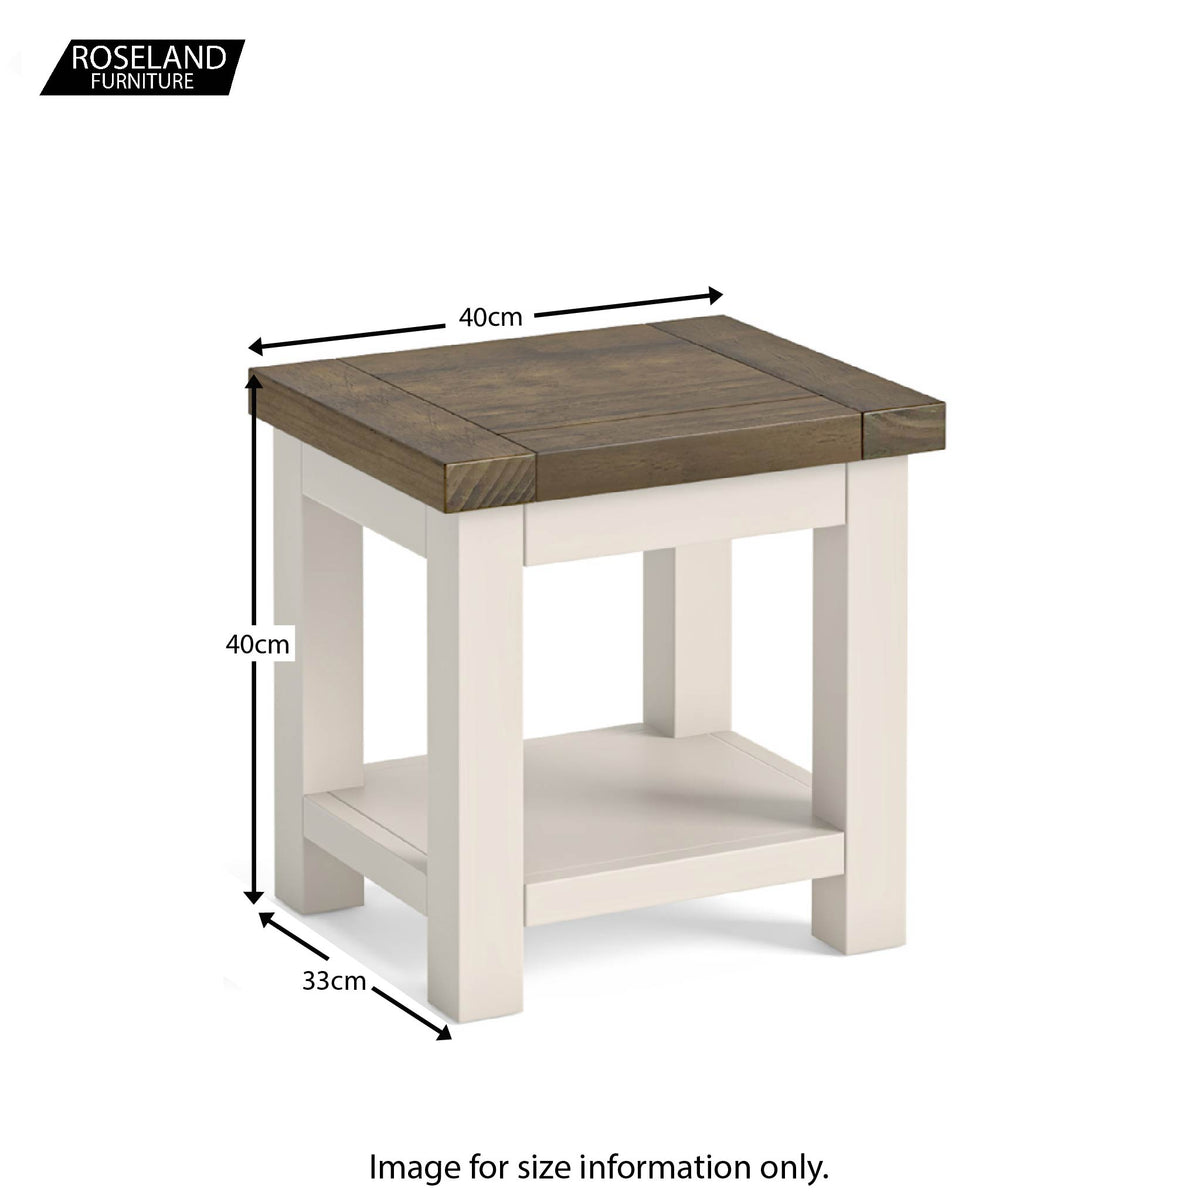 Dimensions - Hove Ivory Lamp Table